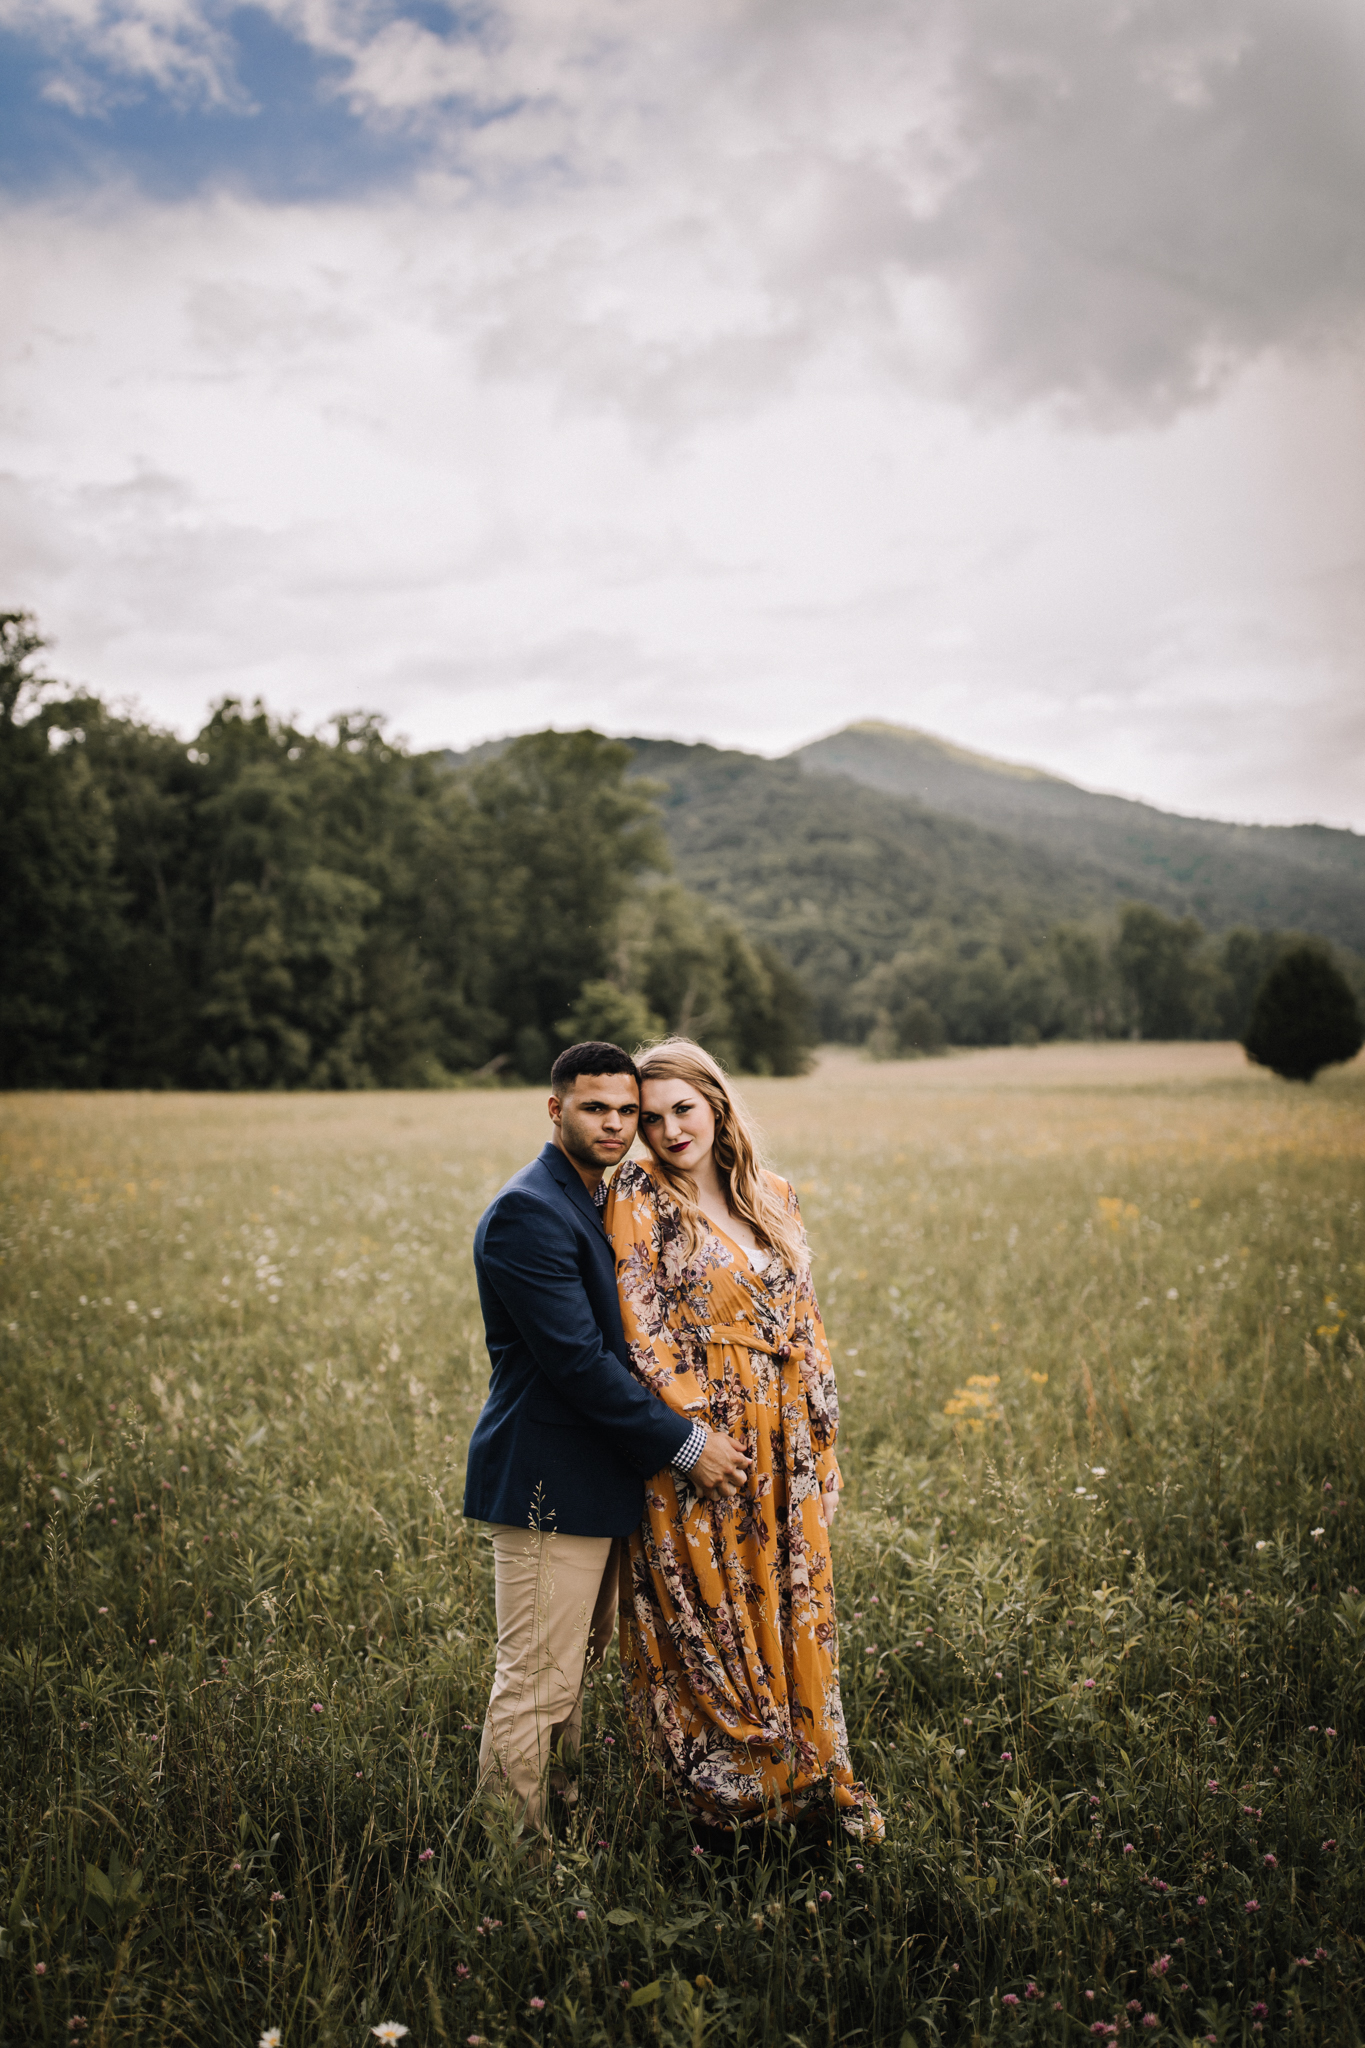 billie-shaye style photography - www.billieshayestyle.com - smokey mountain cades cove summer rain engagement session - gatlinburg tennessee-0248.jpg